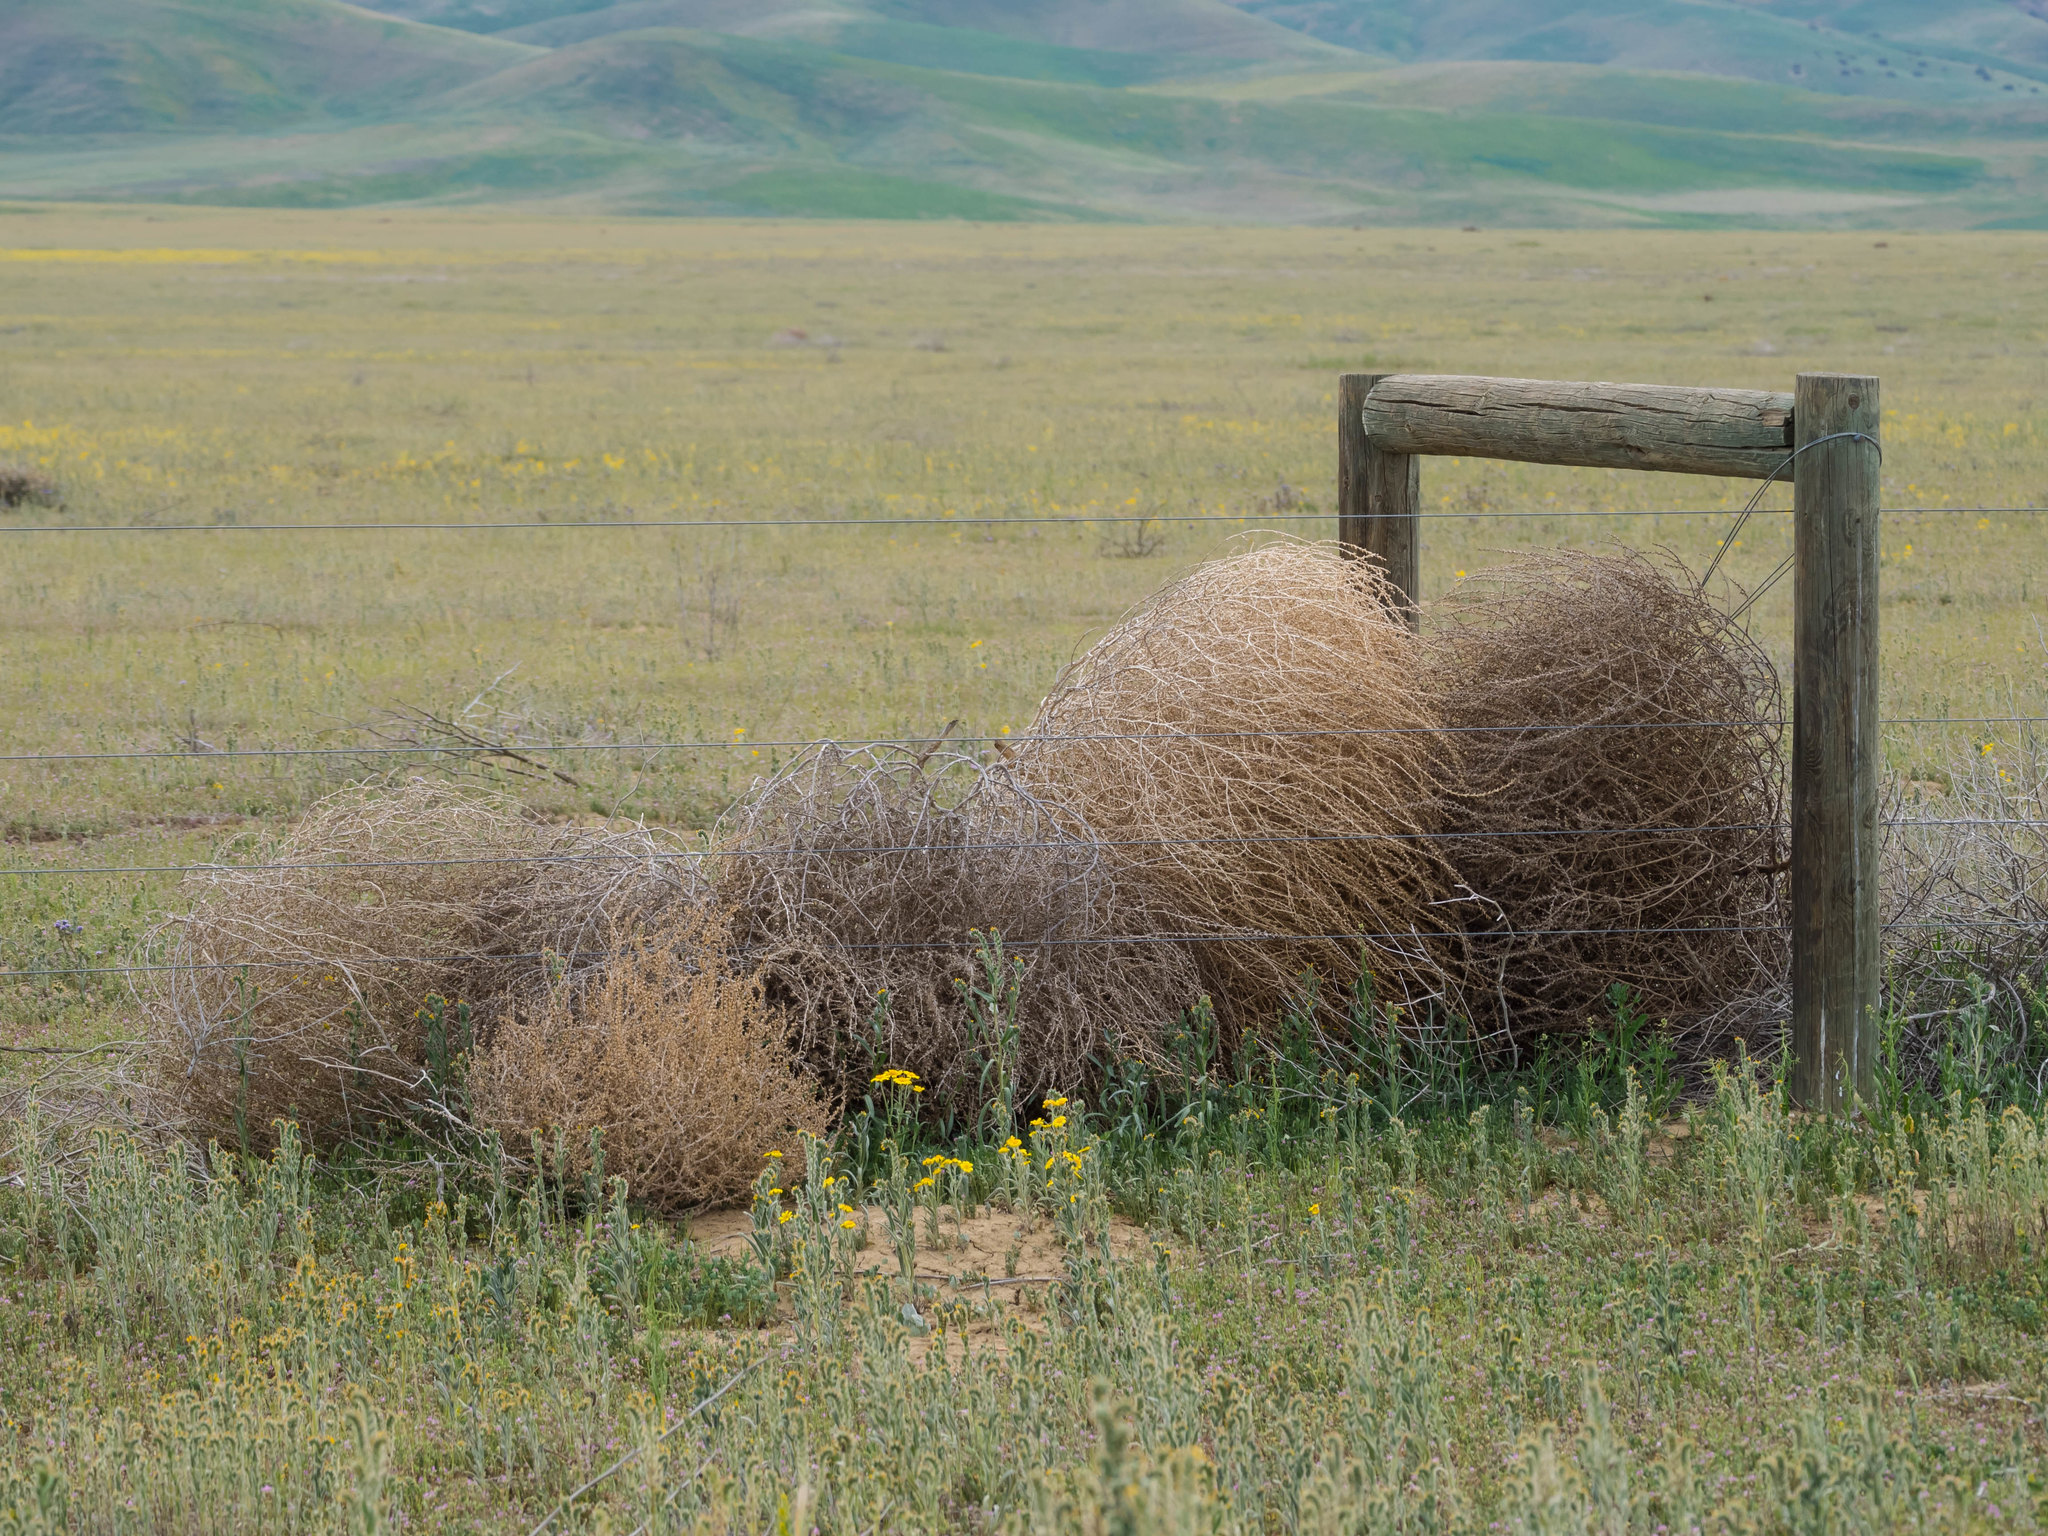 A whole family of tumbleweeds bunched up against a fence.